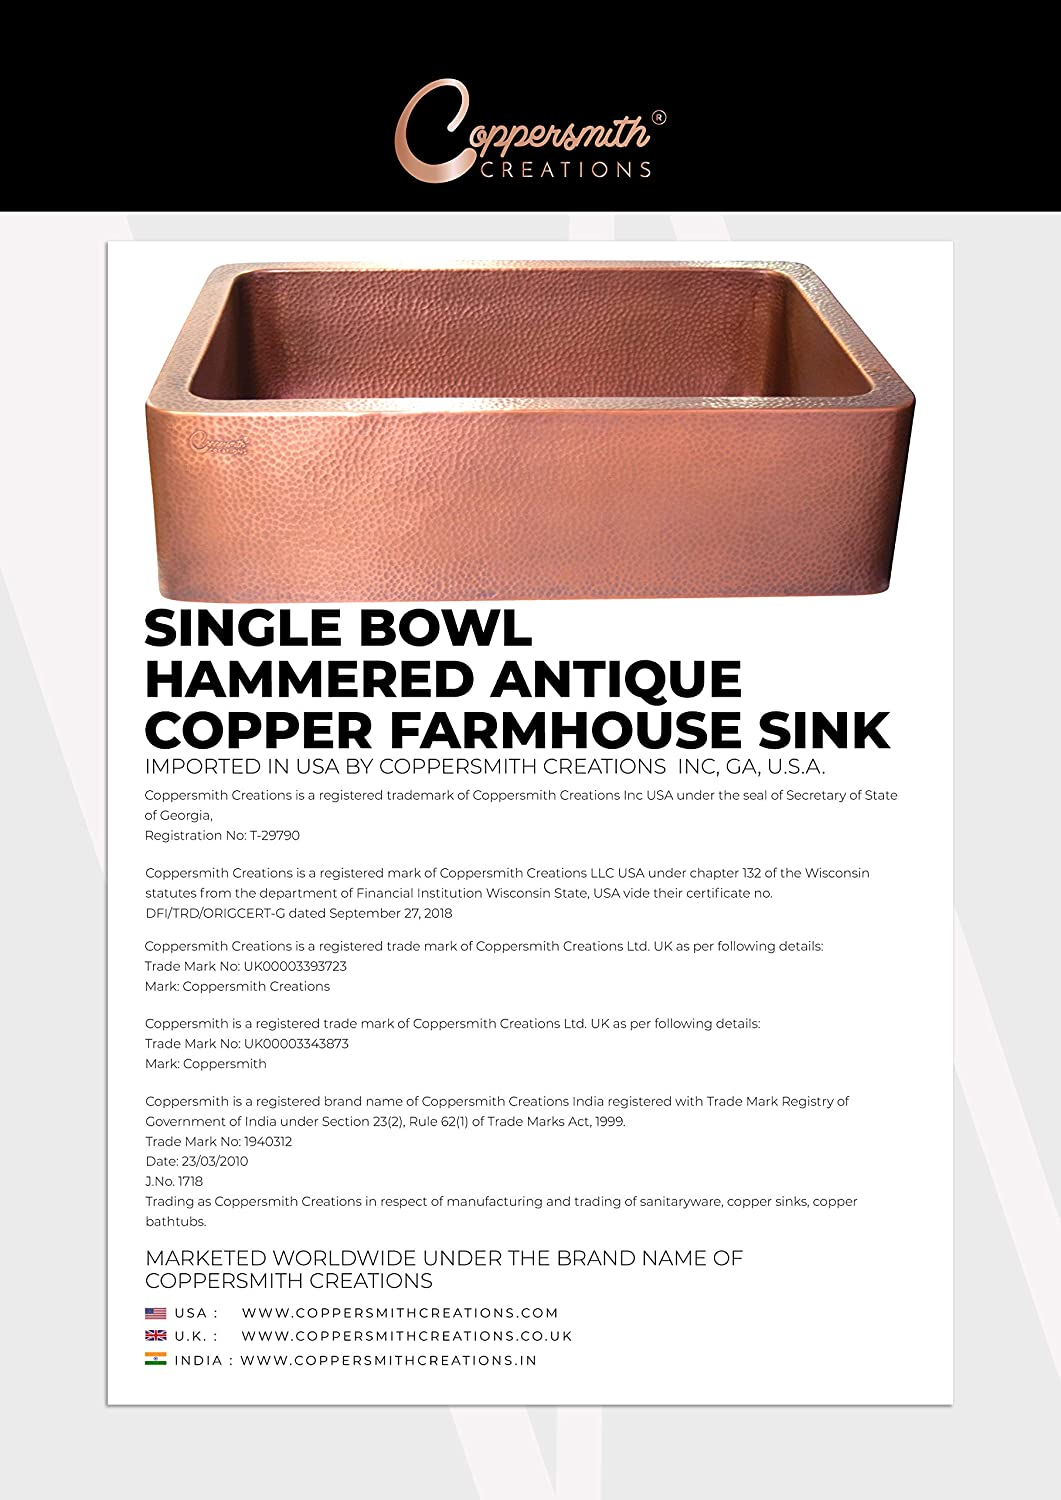 Best Quality Best Price Coppersmith Creations 33-inch Farmhouse Front Apron Copper Kitchen Sink Single Bowl Hand Hammered Antique finish